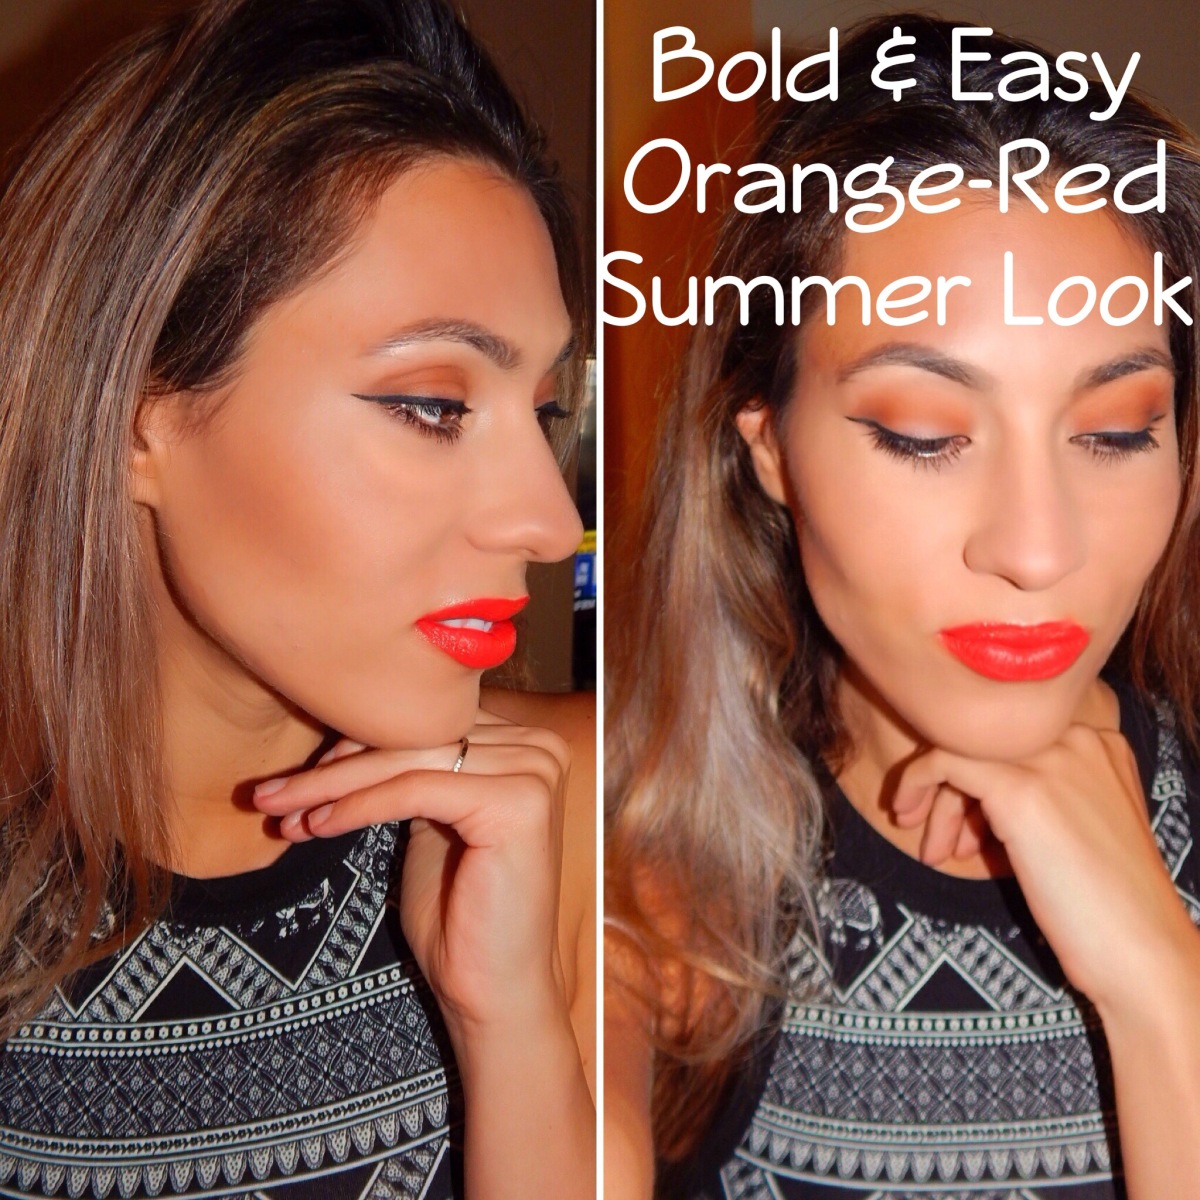 Bold & Easy Summer MakeUp Look